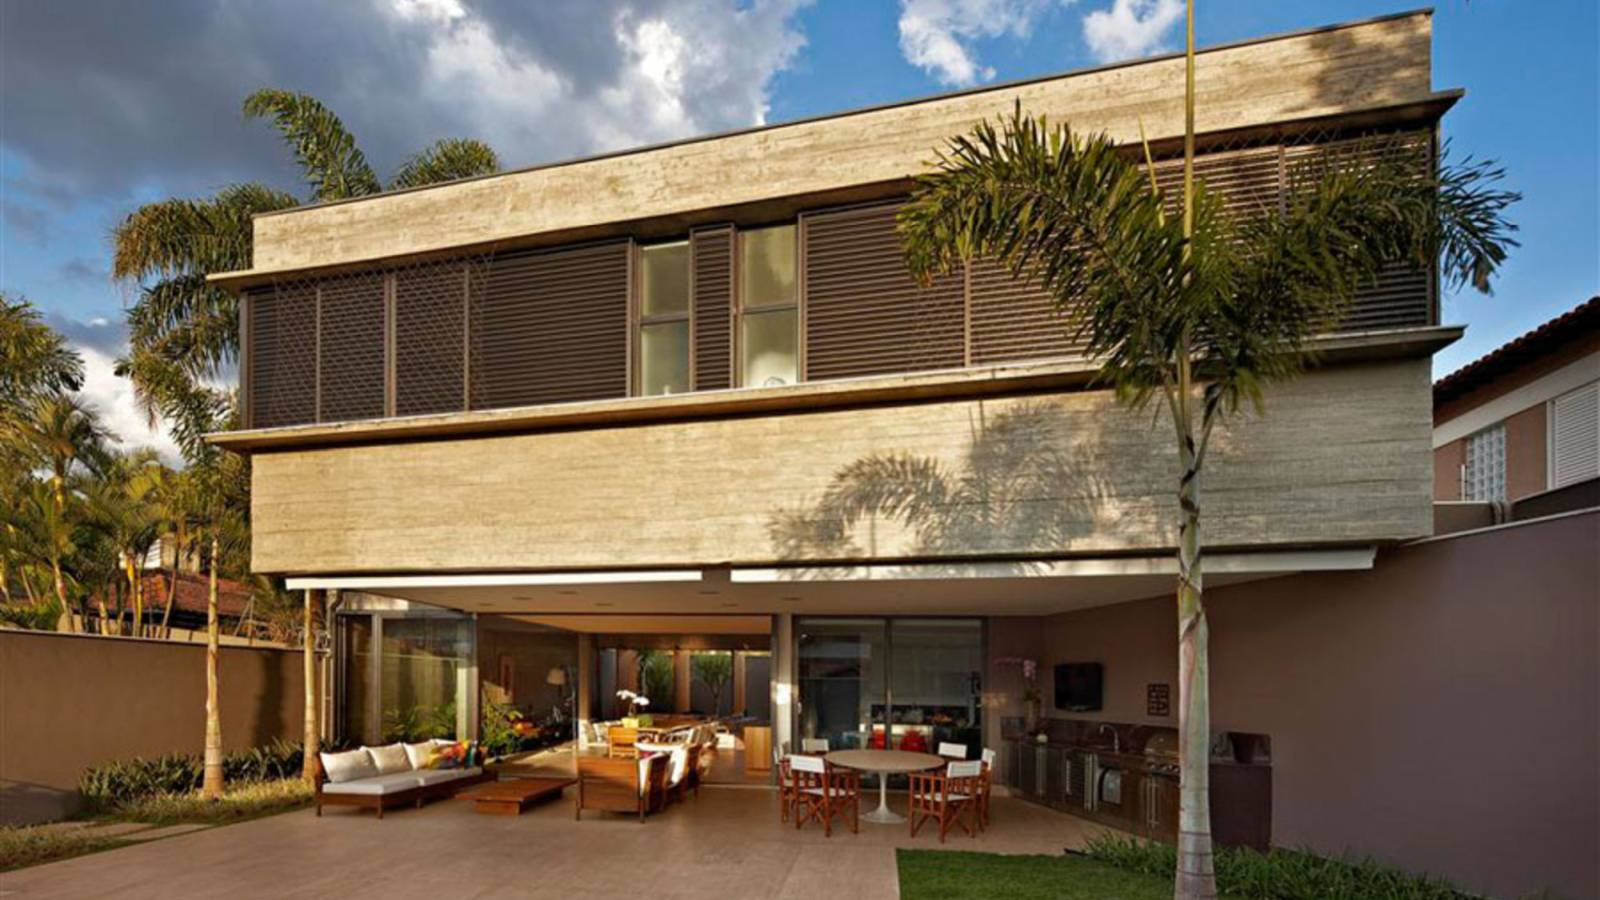 Awesome Mansion in Belo Horizonte by Anastasia Architects.